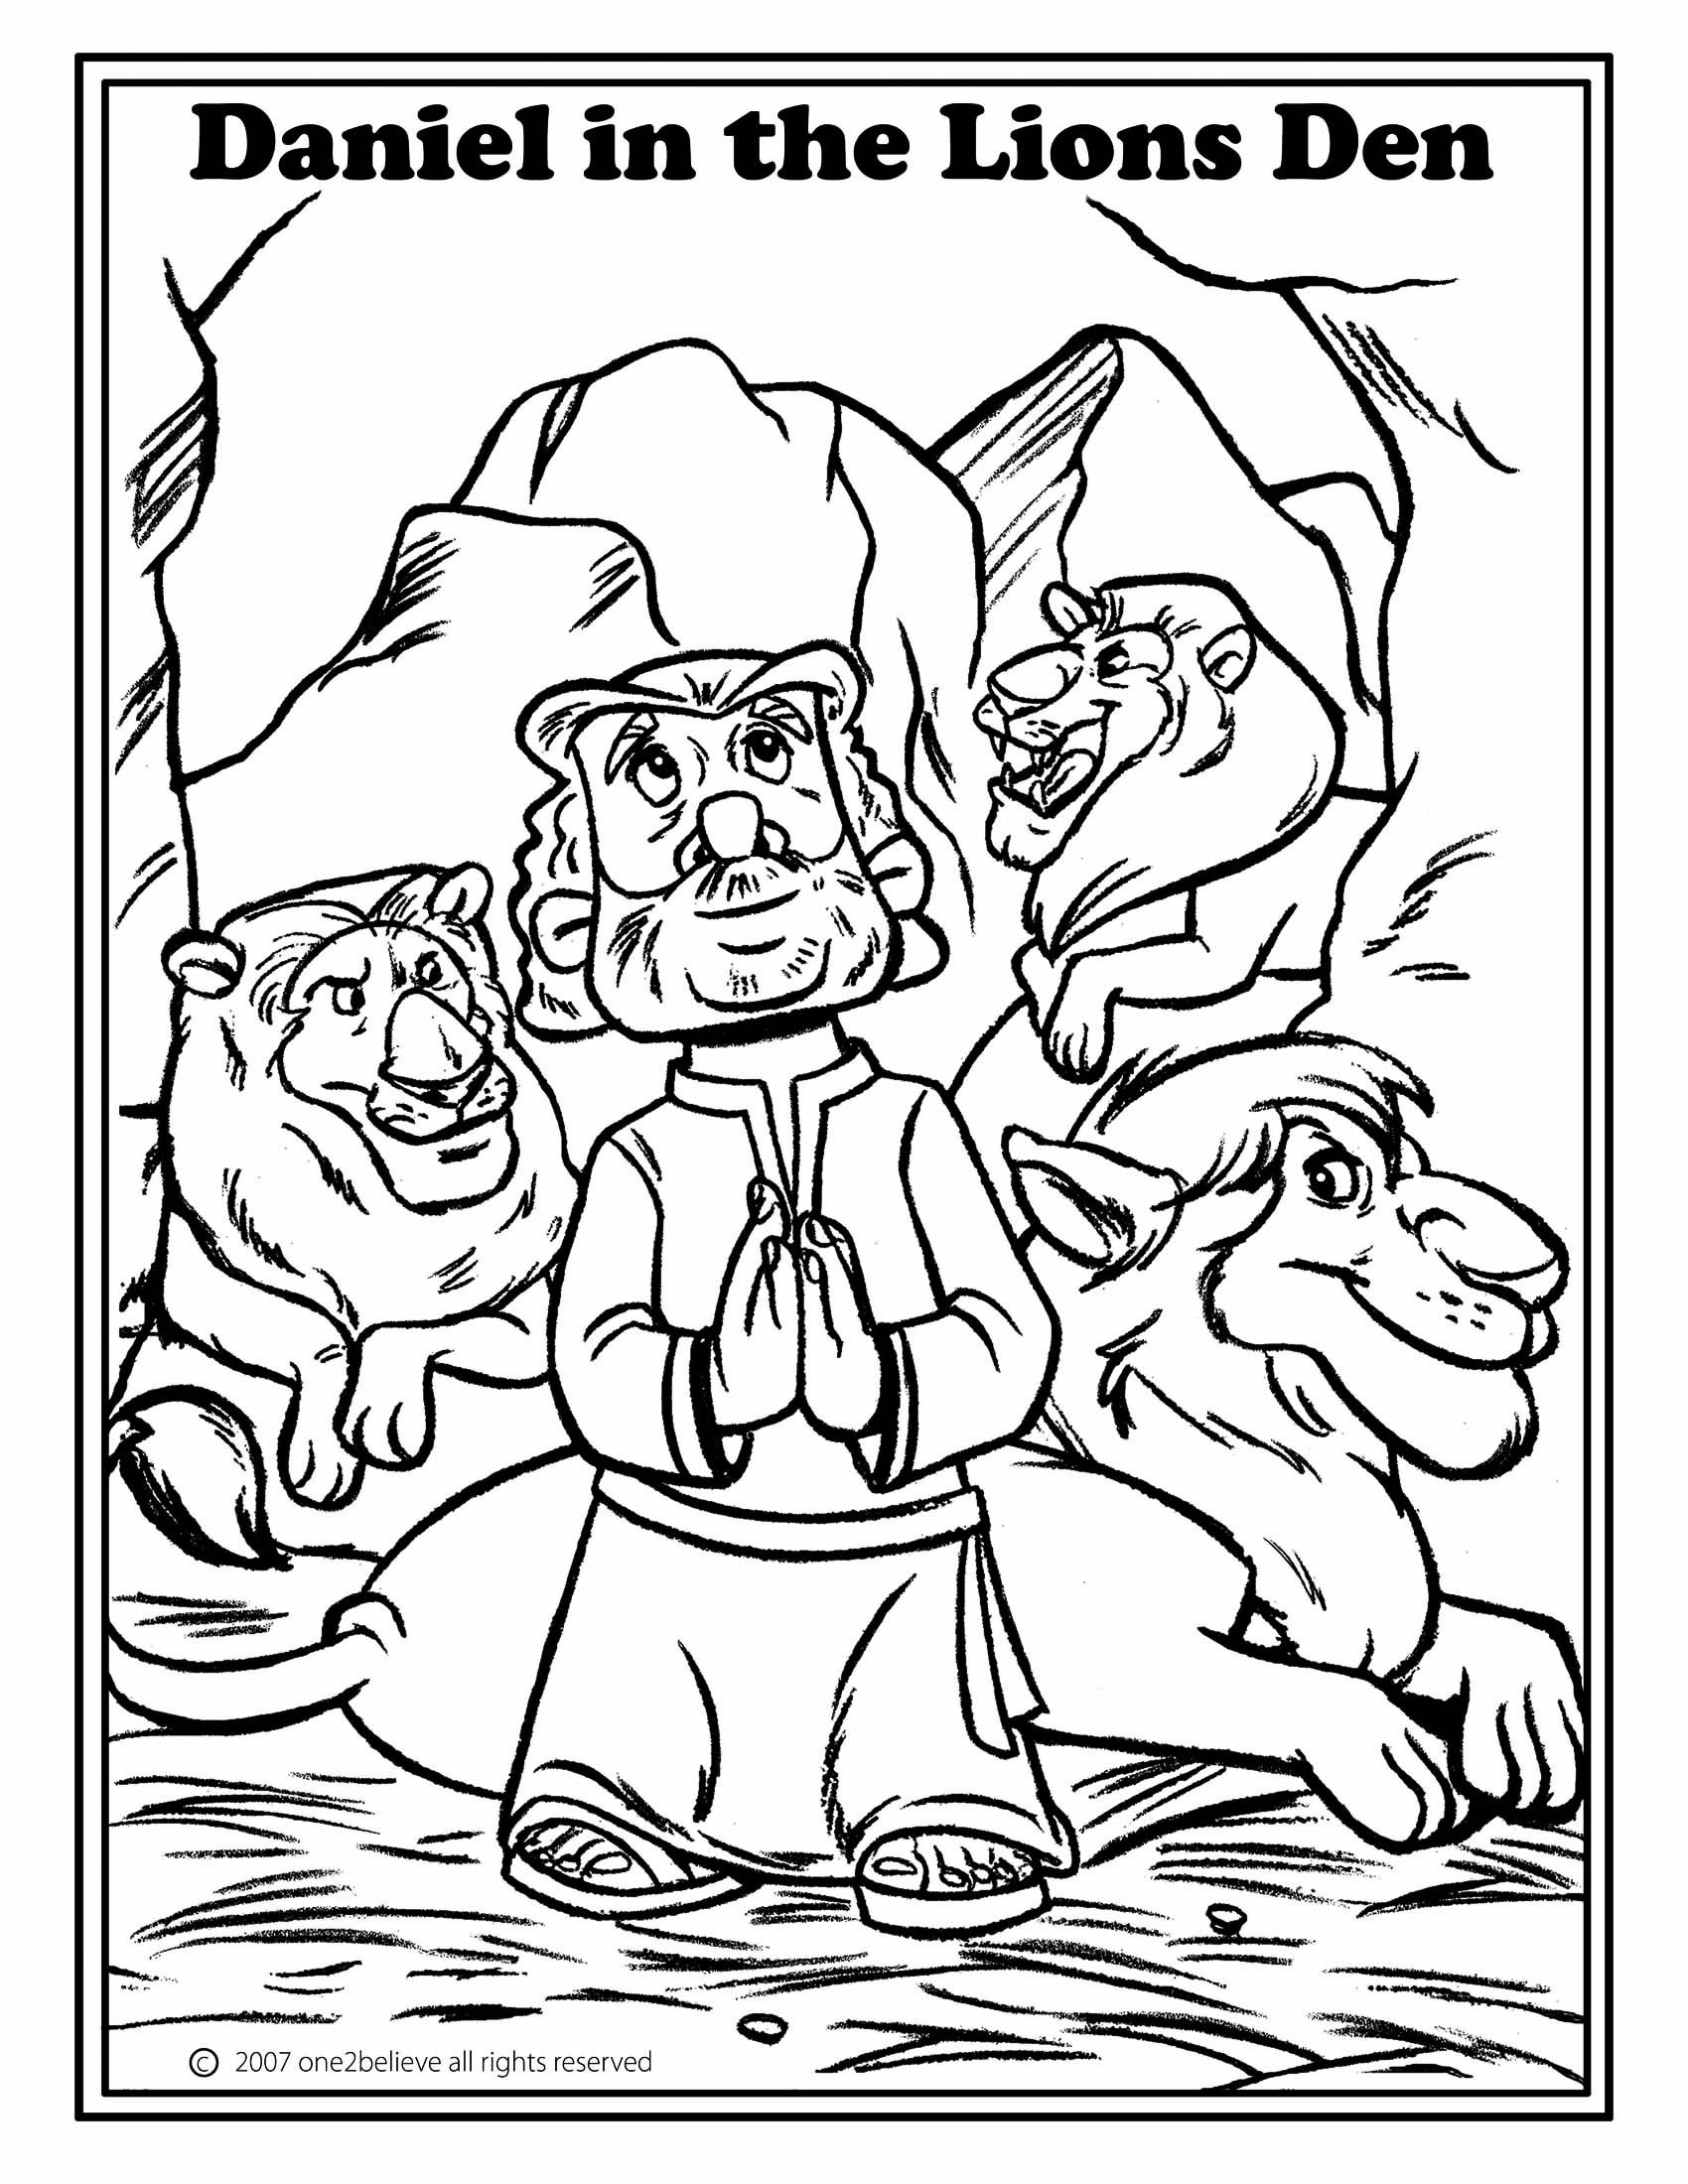 bible story coloring pages bible coloring pages 2020 best cool funny coloring story pages bible